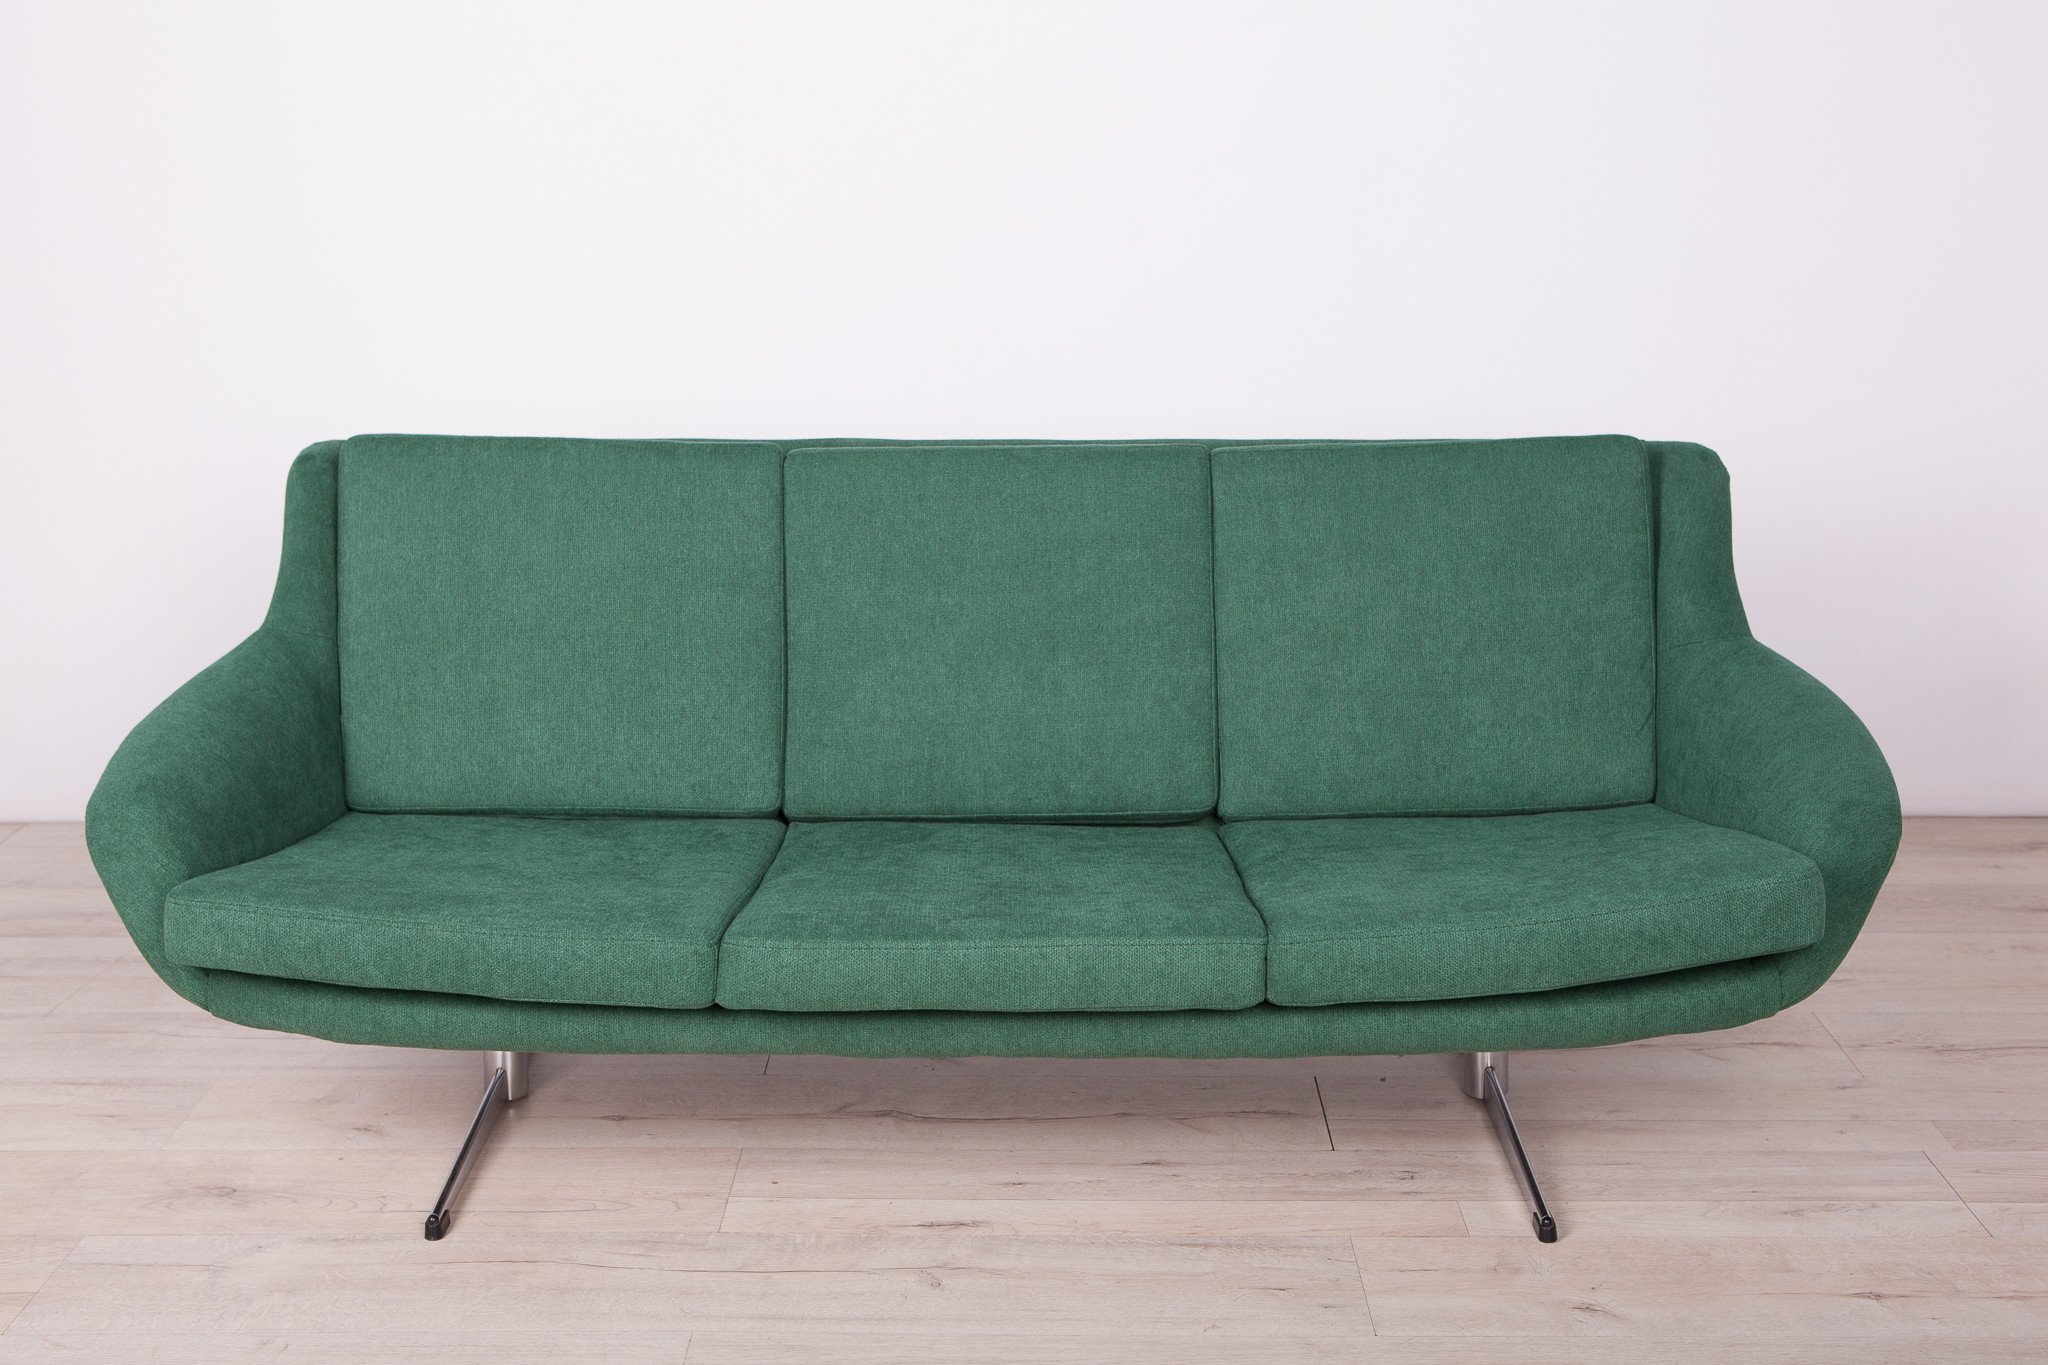 Sofa, Denmark, 1970s - 503999 - photo